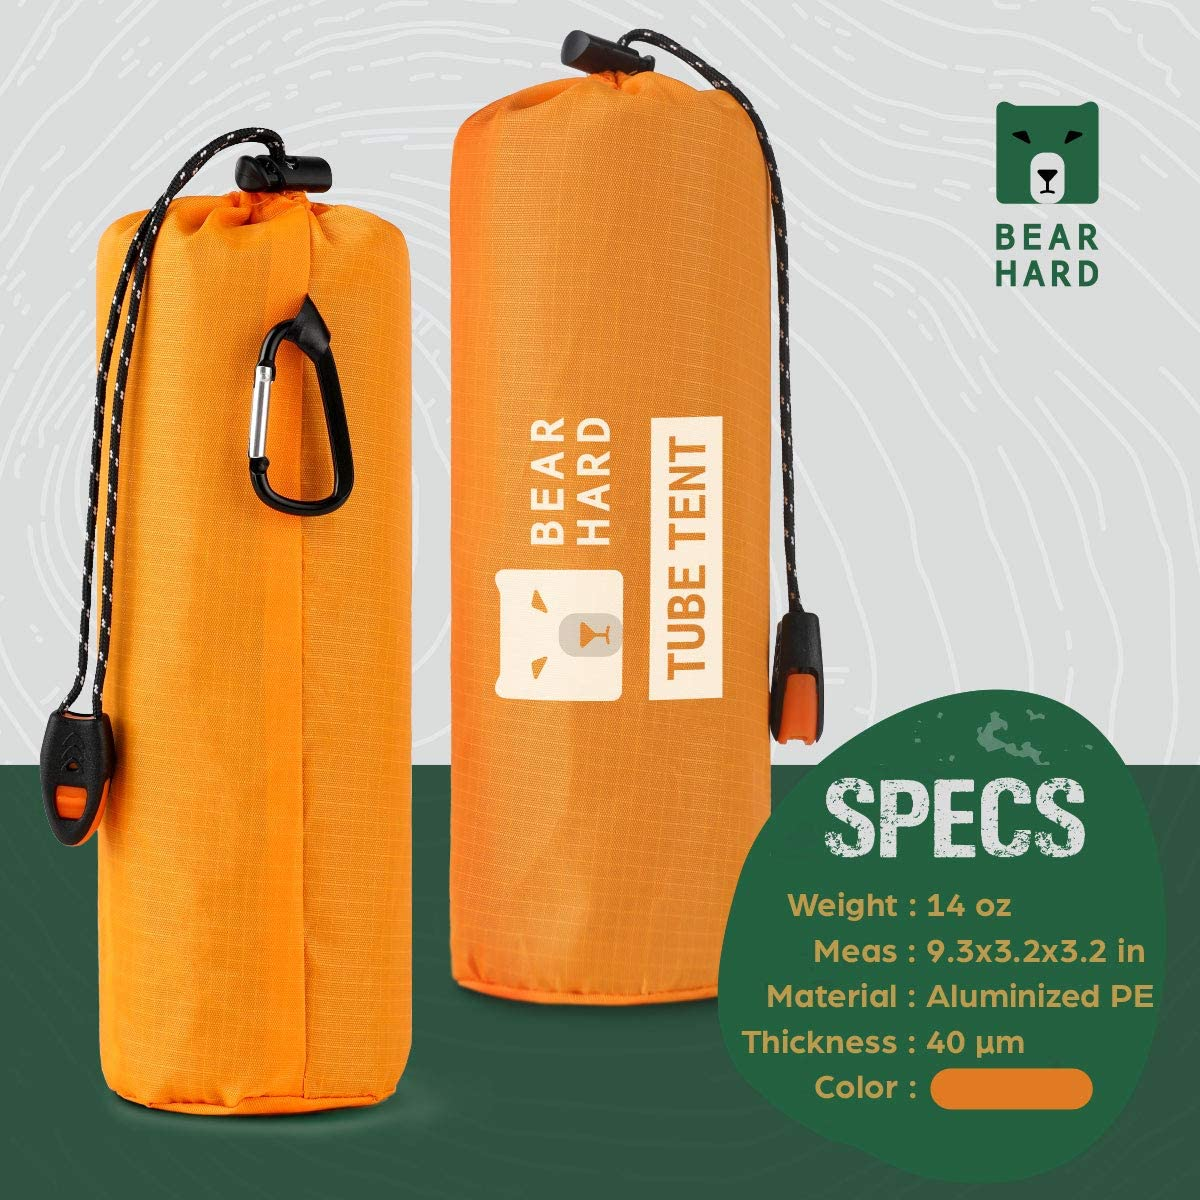 Hiking Kayaking 2 Person Tube Tent Survival Shelter with Paracord Stakes Ultralight Survival Tent Emergency Shelter Use as Survival Gear Space Blanket for Camping Bearhard Emergency Tent